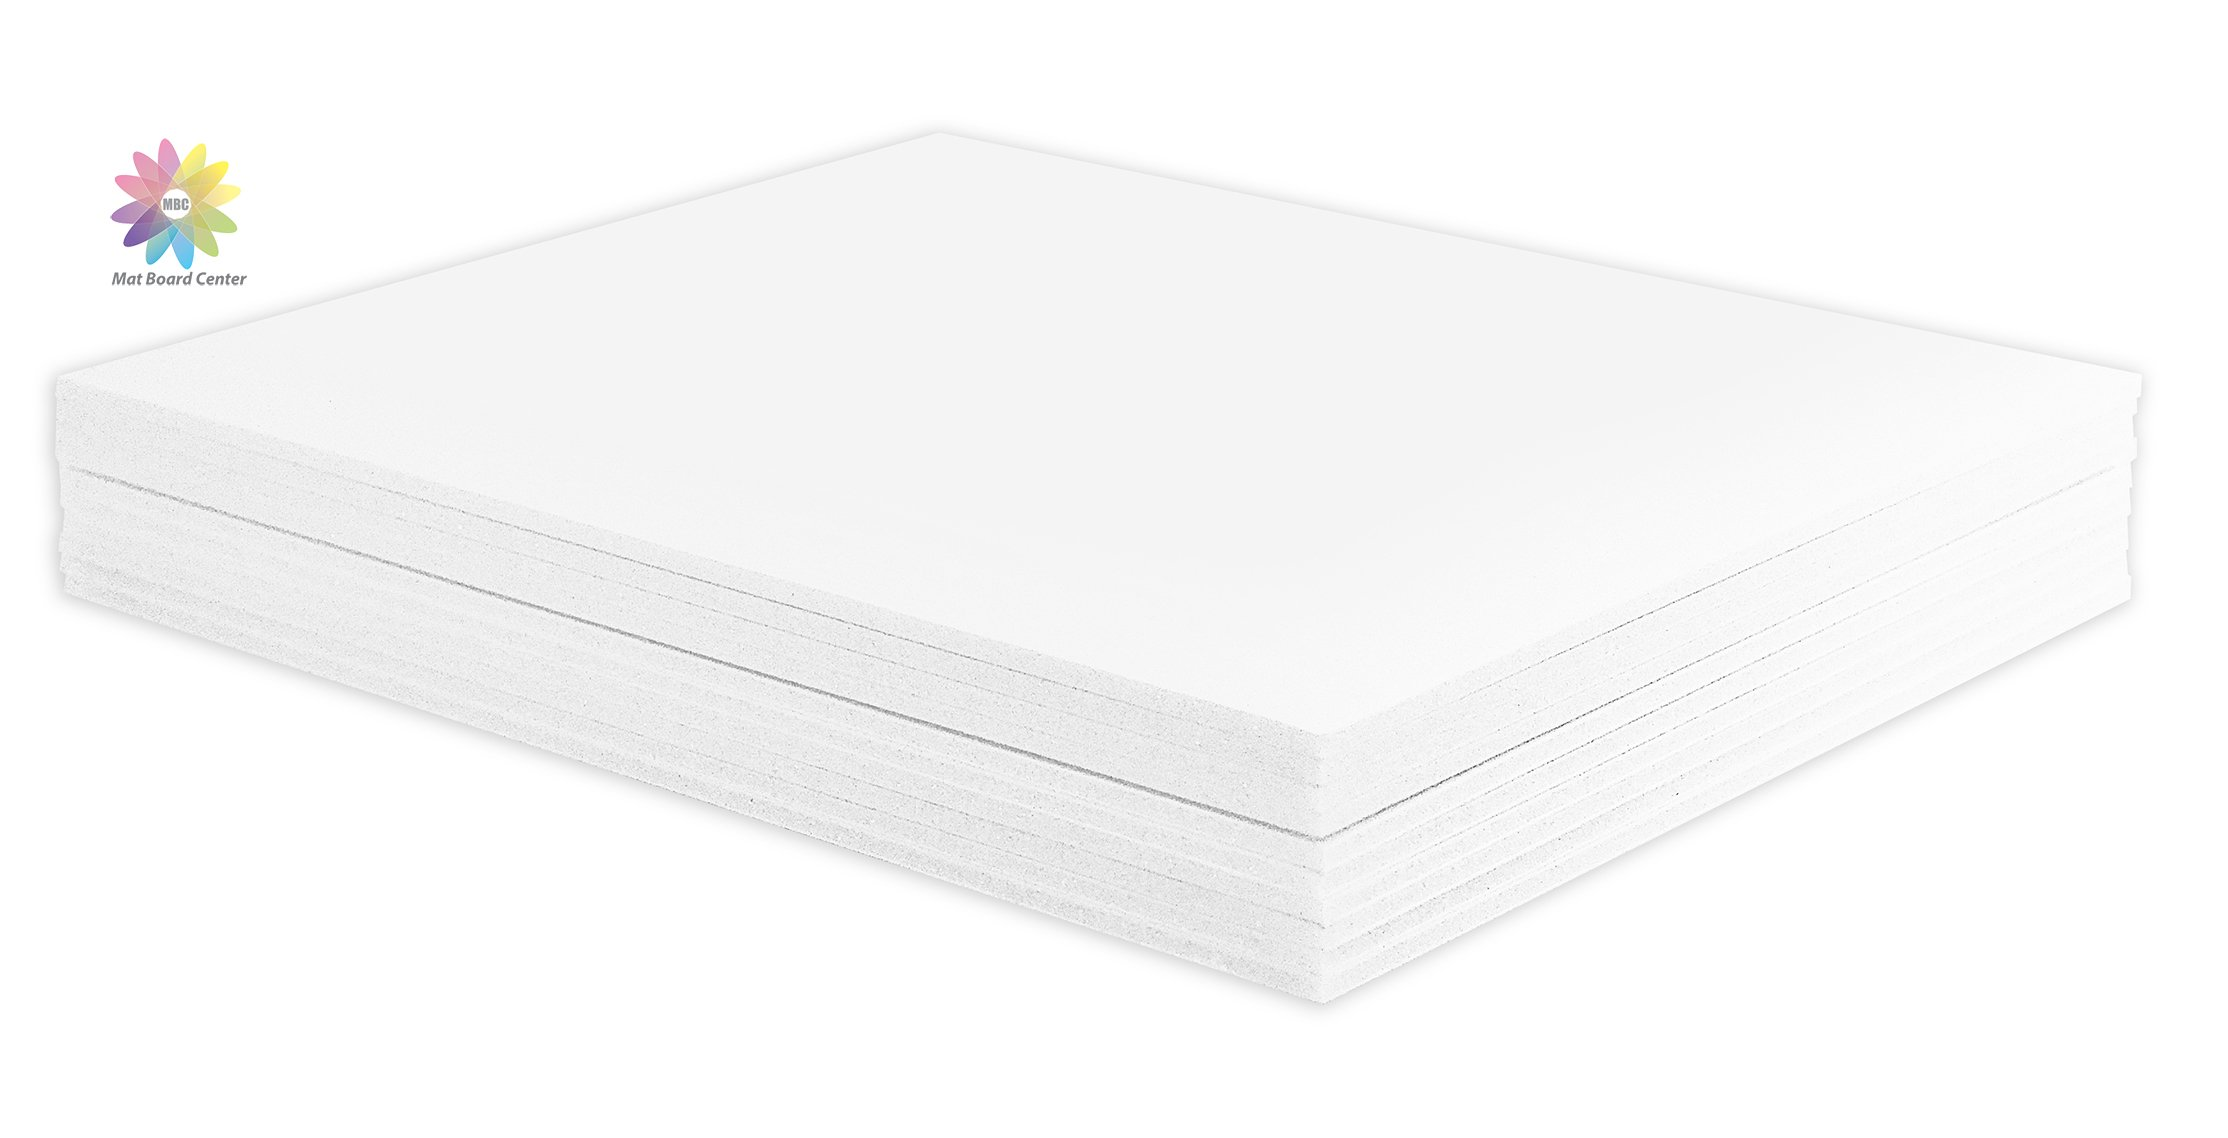 Mat Board Center, Pack of 10 1/8'' White Foam Core Backing Boards (11x14, White)